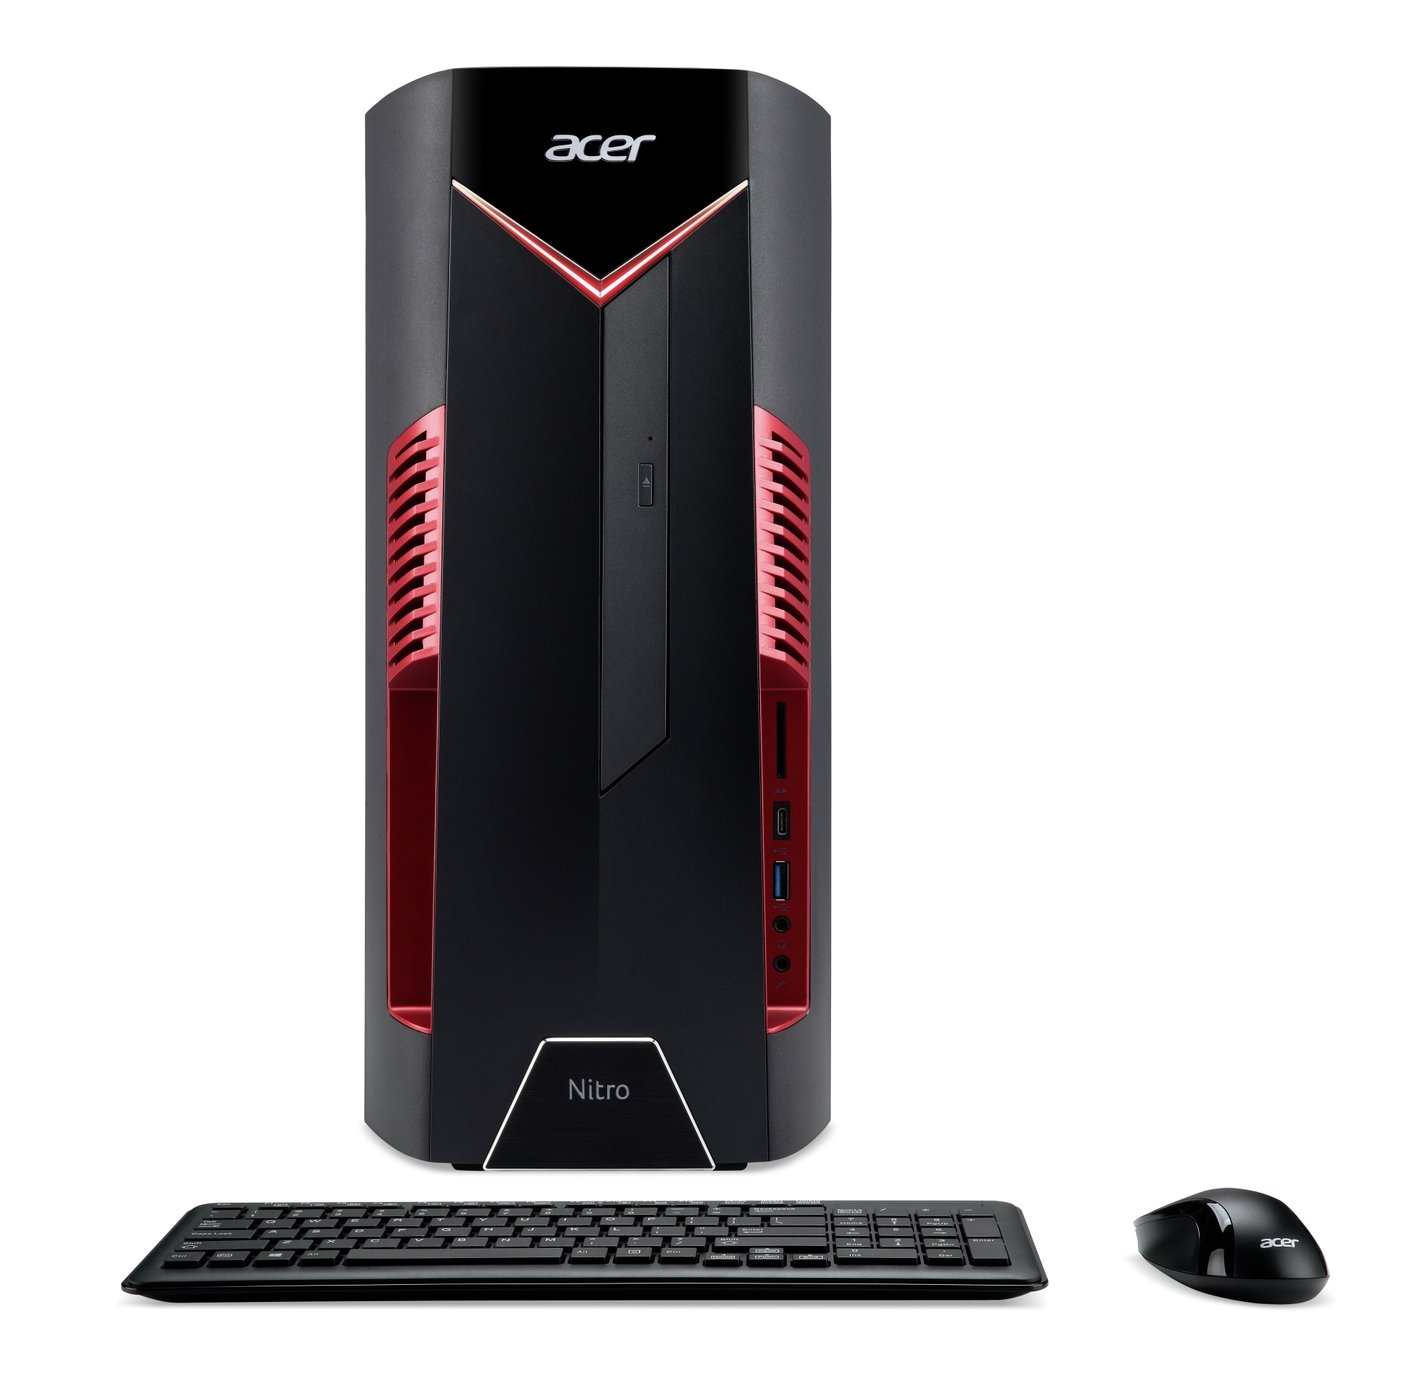 Acer Nitro N50-100 Ryzen 5 8GB 1TB 256GB GTX1650 Gaming PC